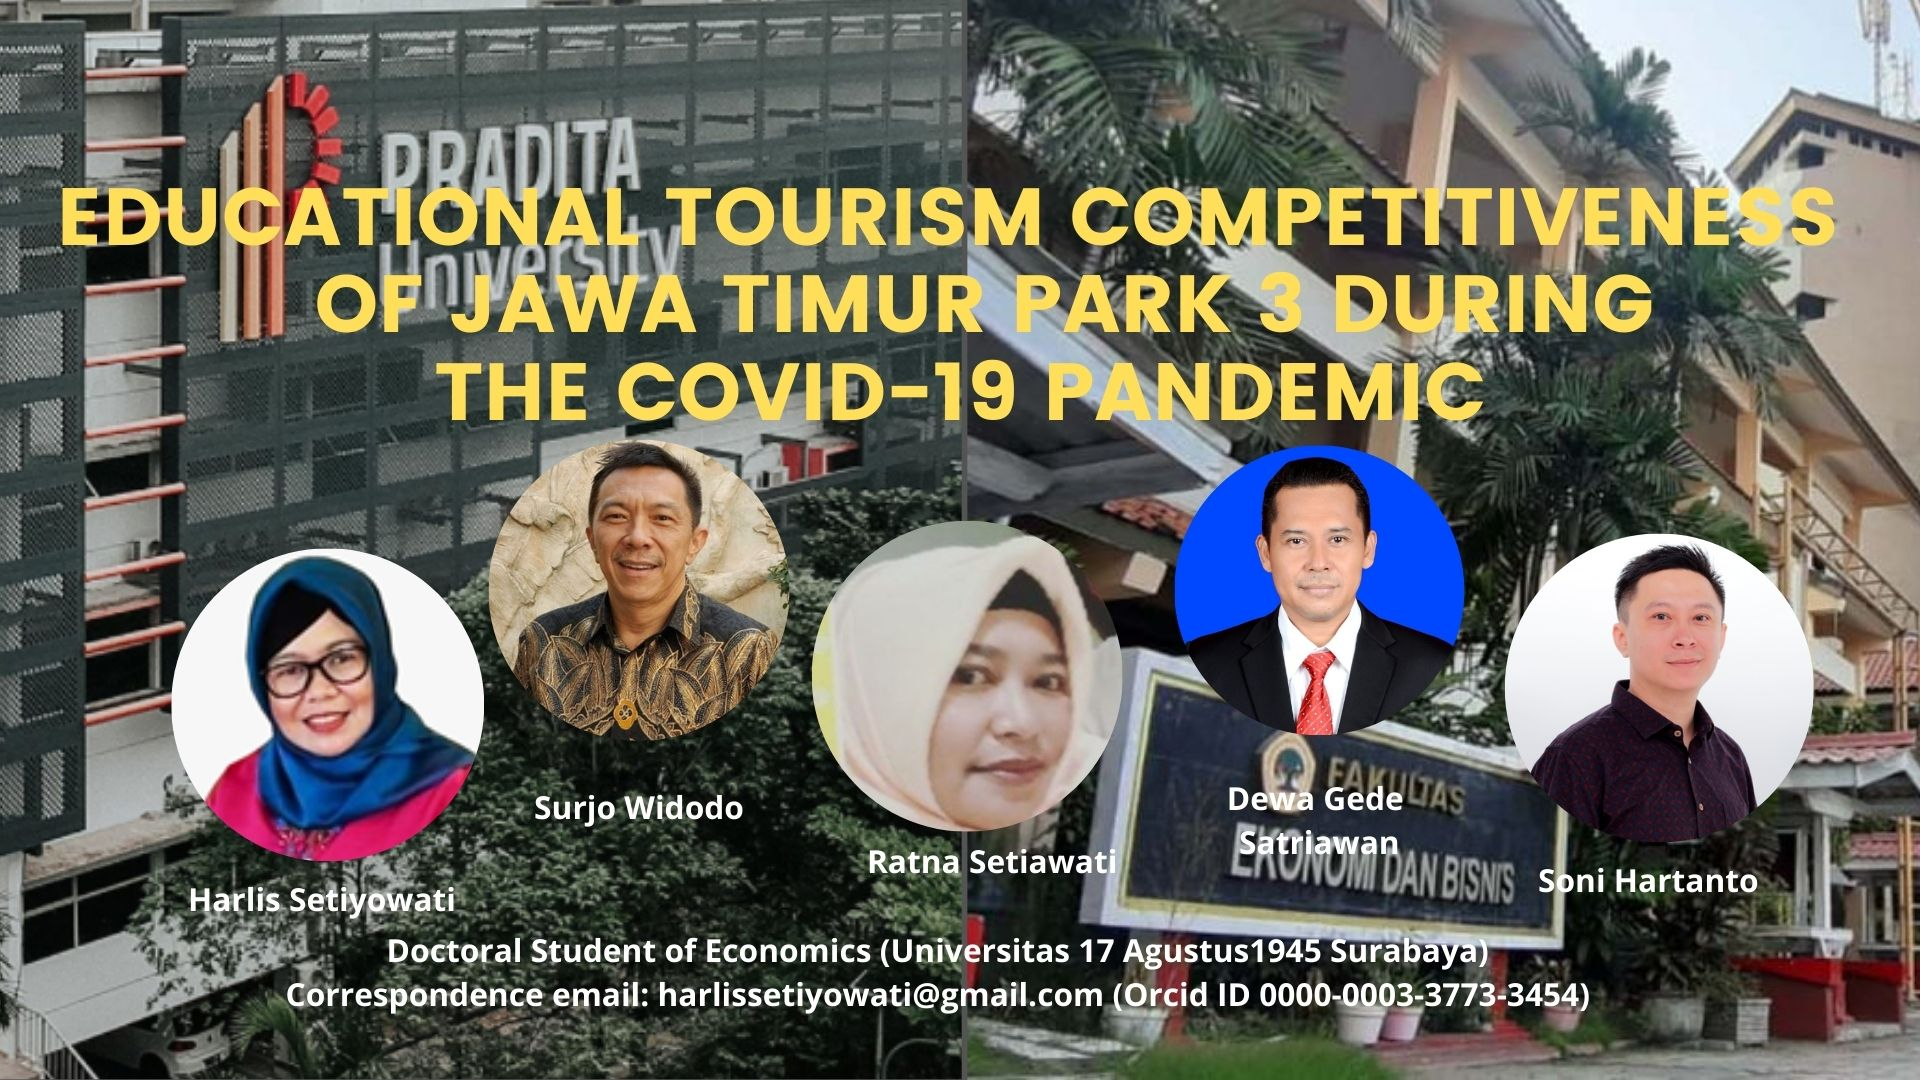 Educational Tourism Competitiveness of Jawa Timur Park 3 During the Covid-19 Pandemic